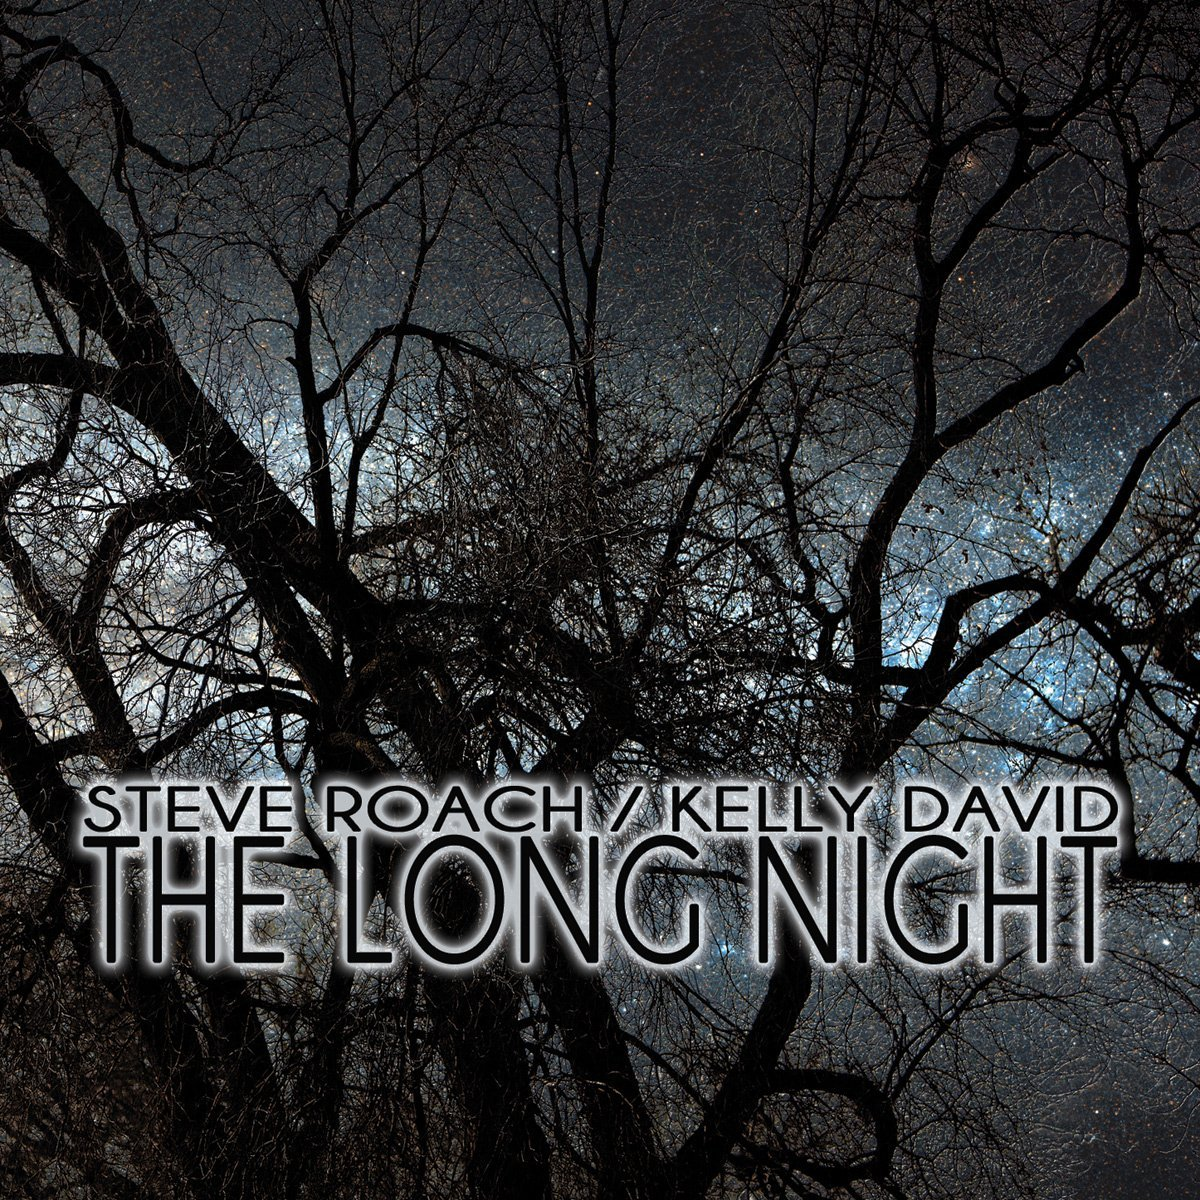 Steve Roach / Kelly David — The Long Night